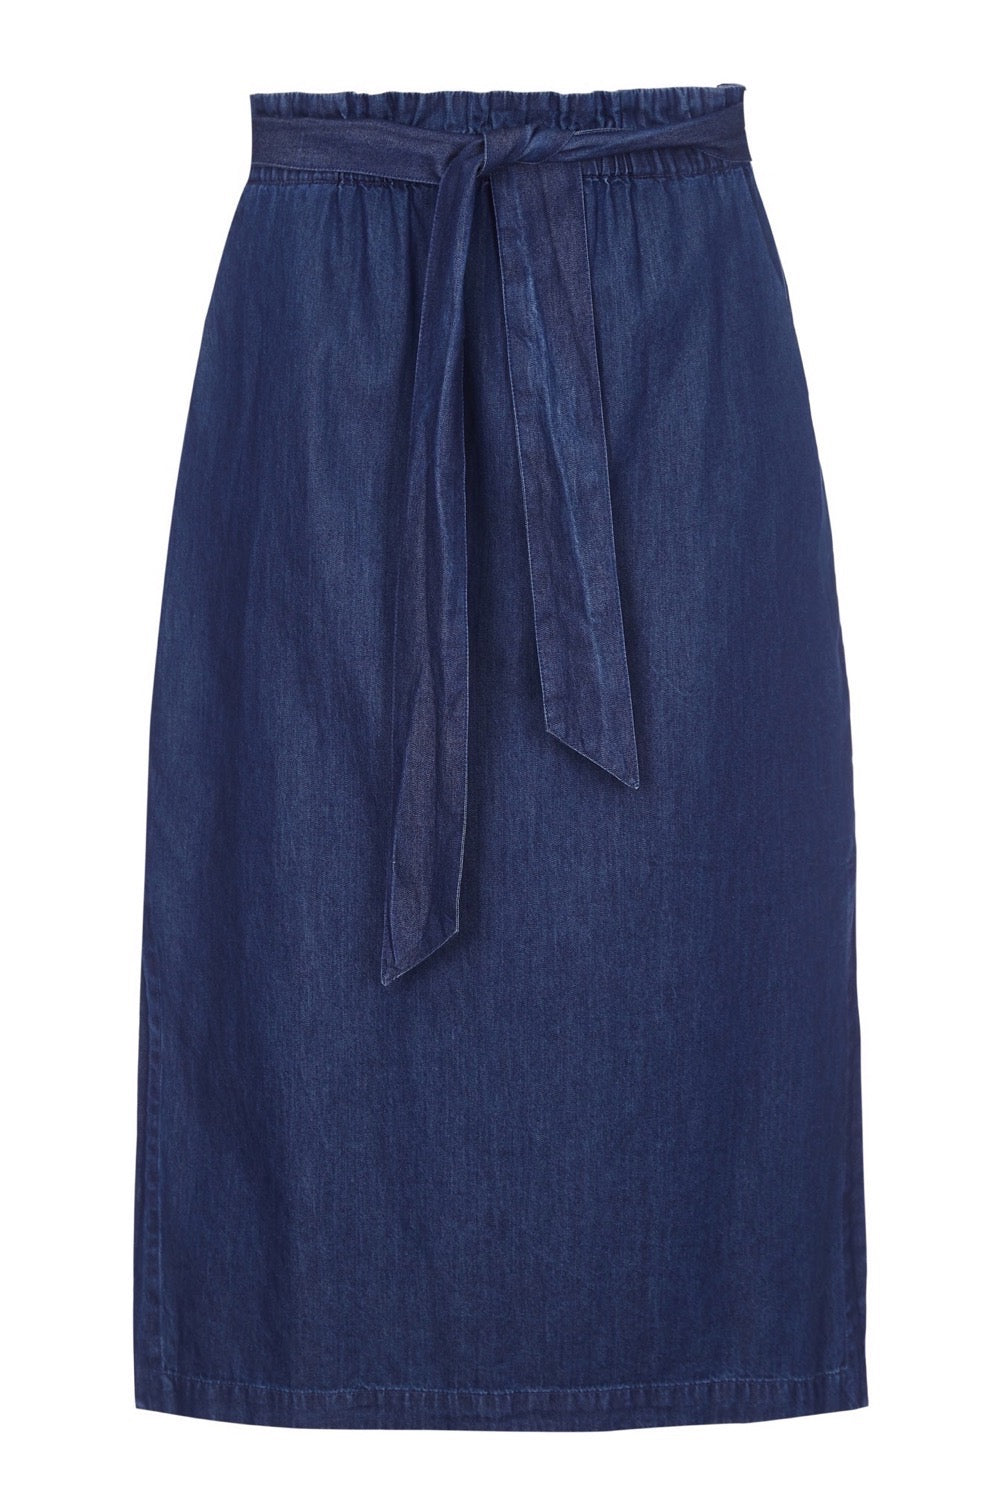 Goo Skirt - Denim Tencel